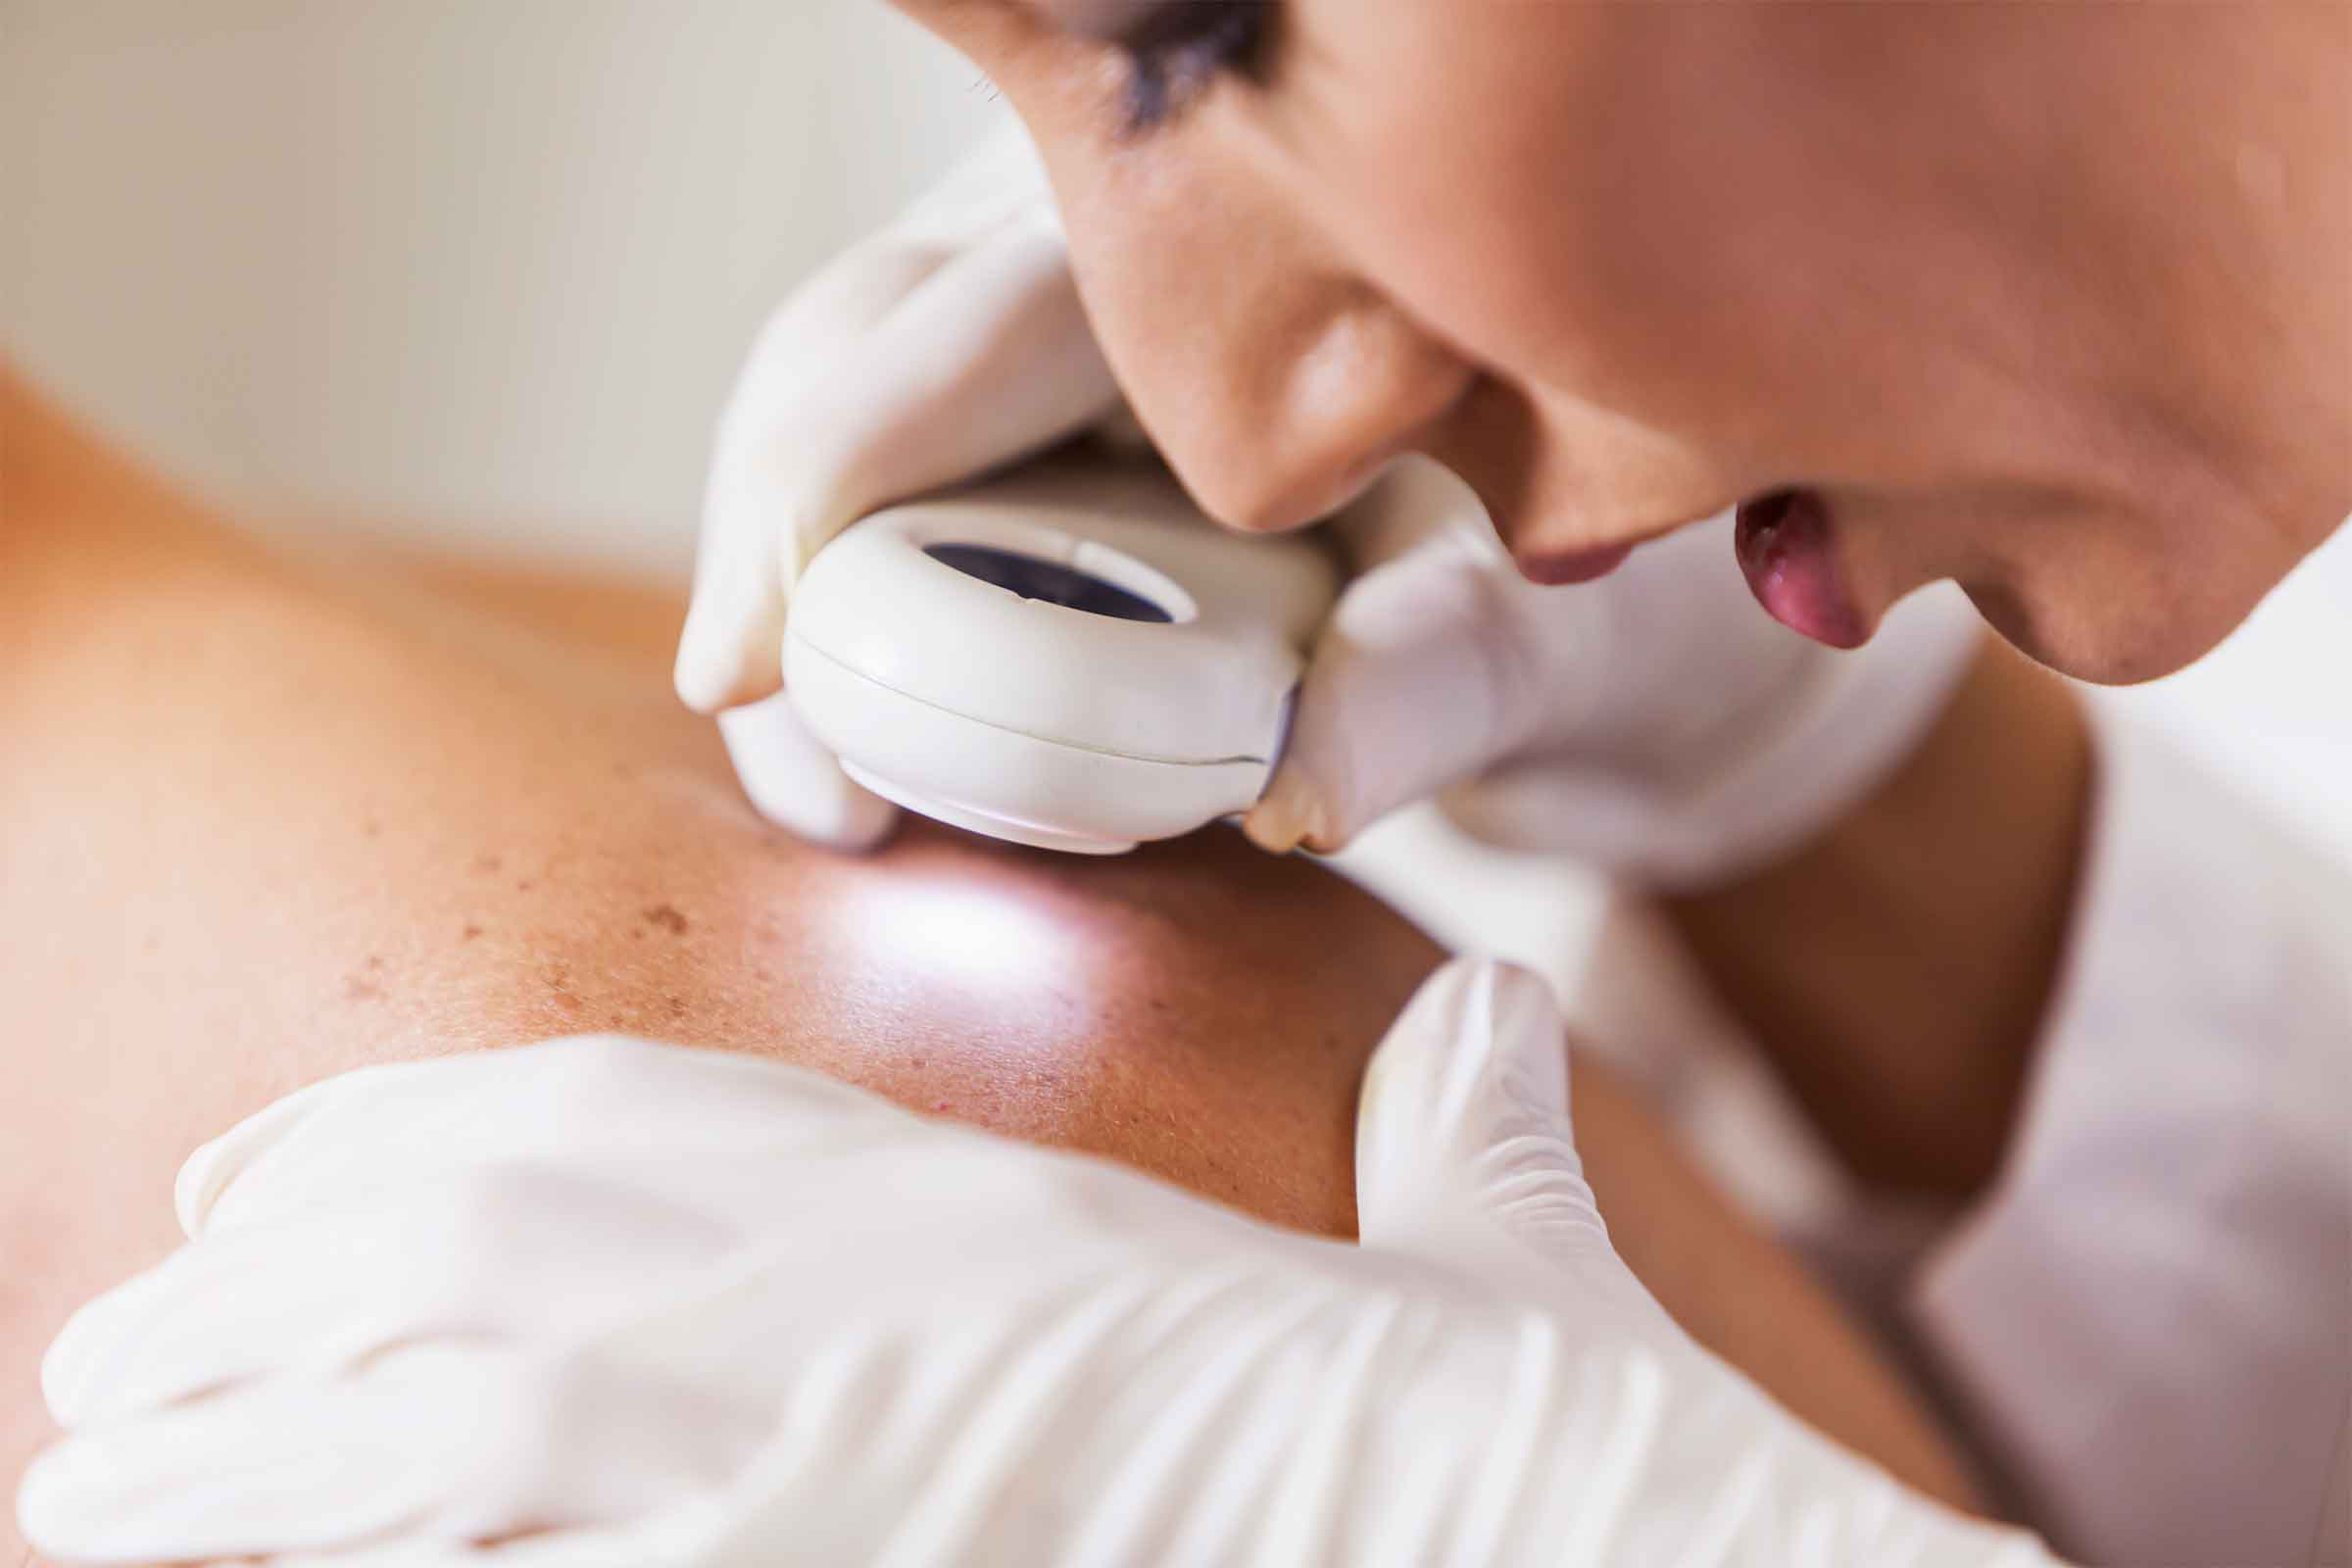 Skin Cancer Can Be Detected Just By Using Your Smartphone